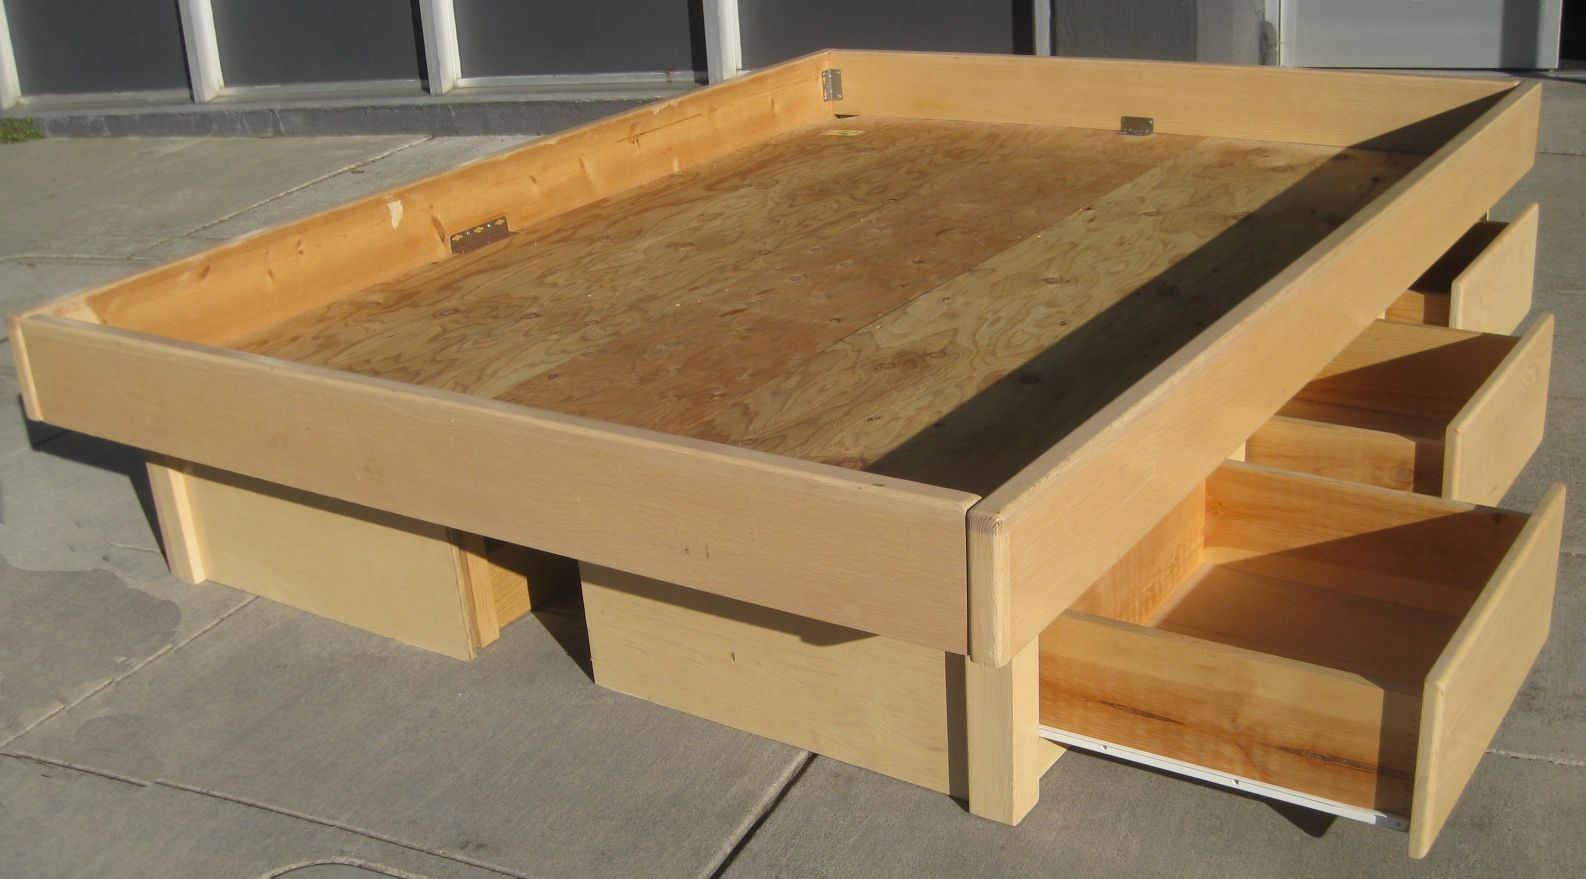 DIY platform bed frame Queen Bed Plans with Drawers http